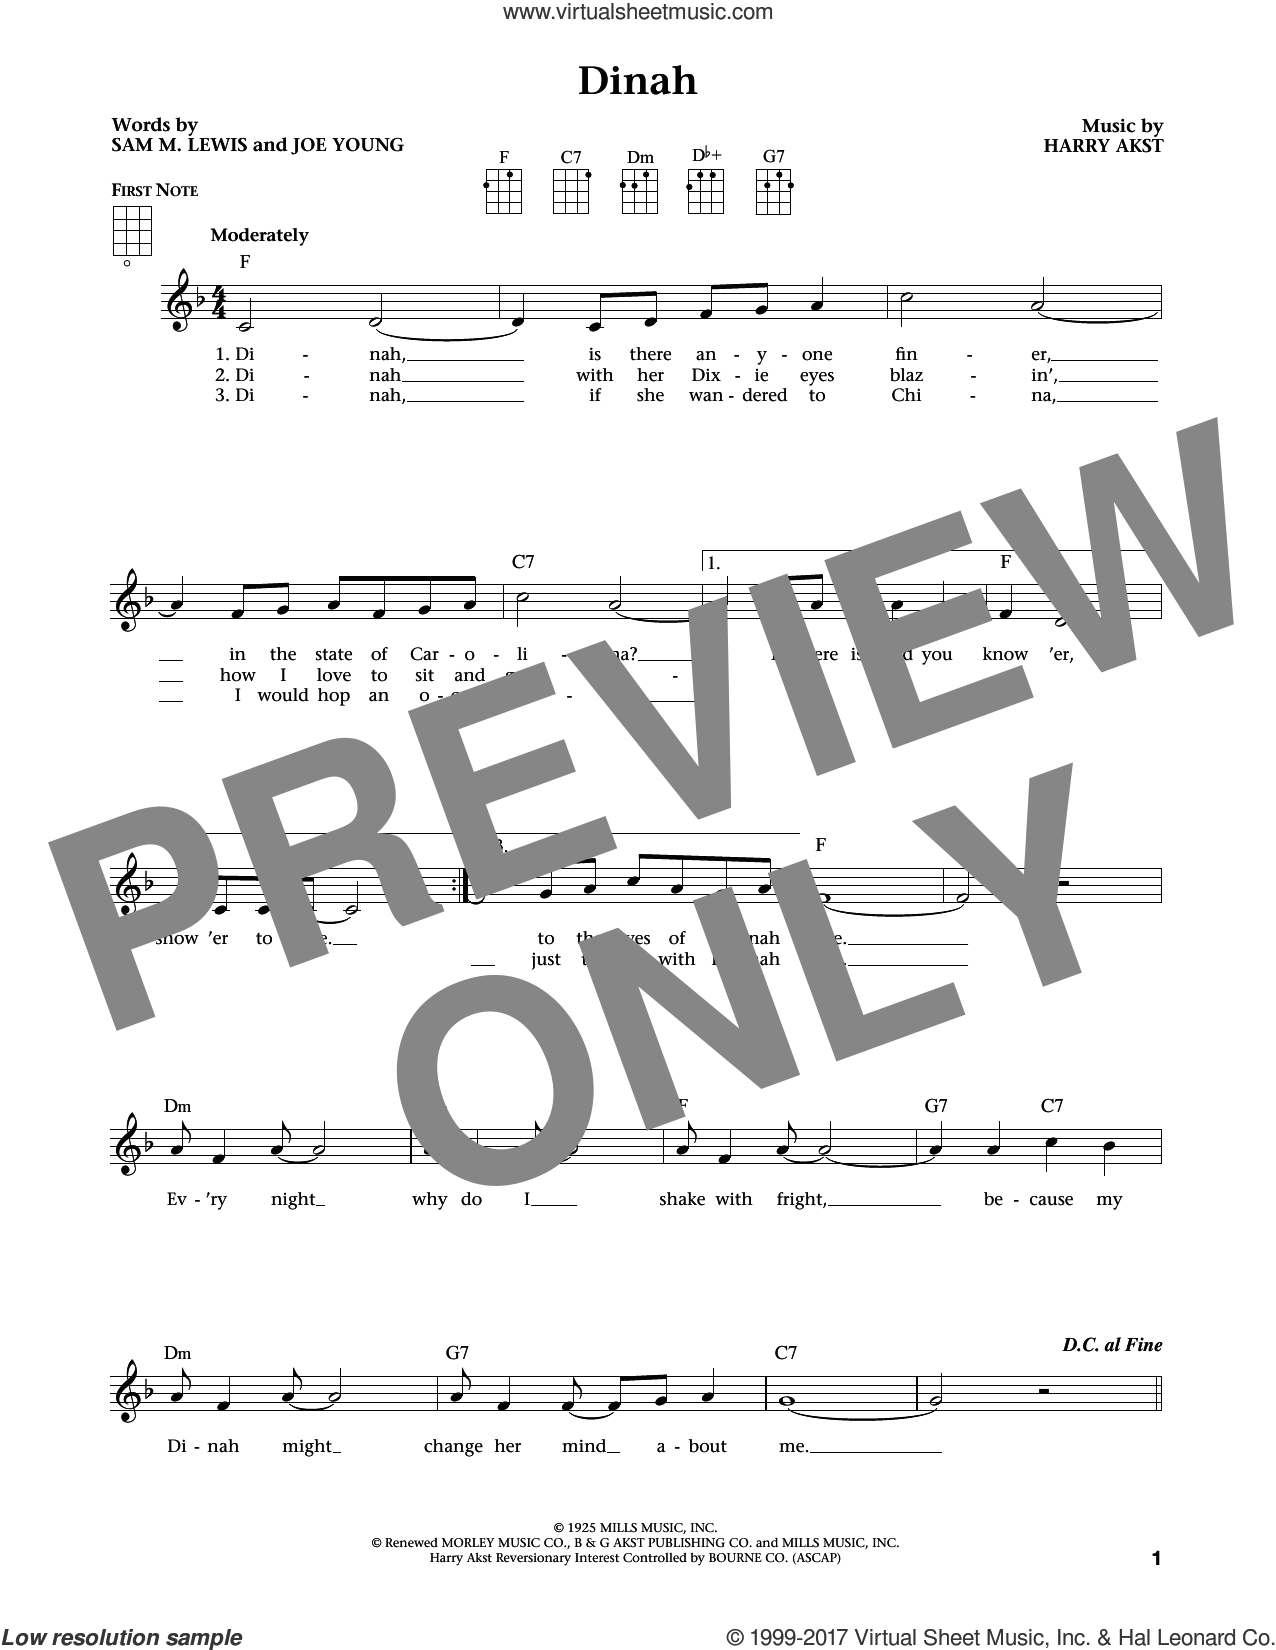 Dinah sheet music for ukulele by Harry Akst, Jim Beloff, Liz Beloff, Joe Young and Sam Lewis, intermediate skill level